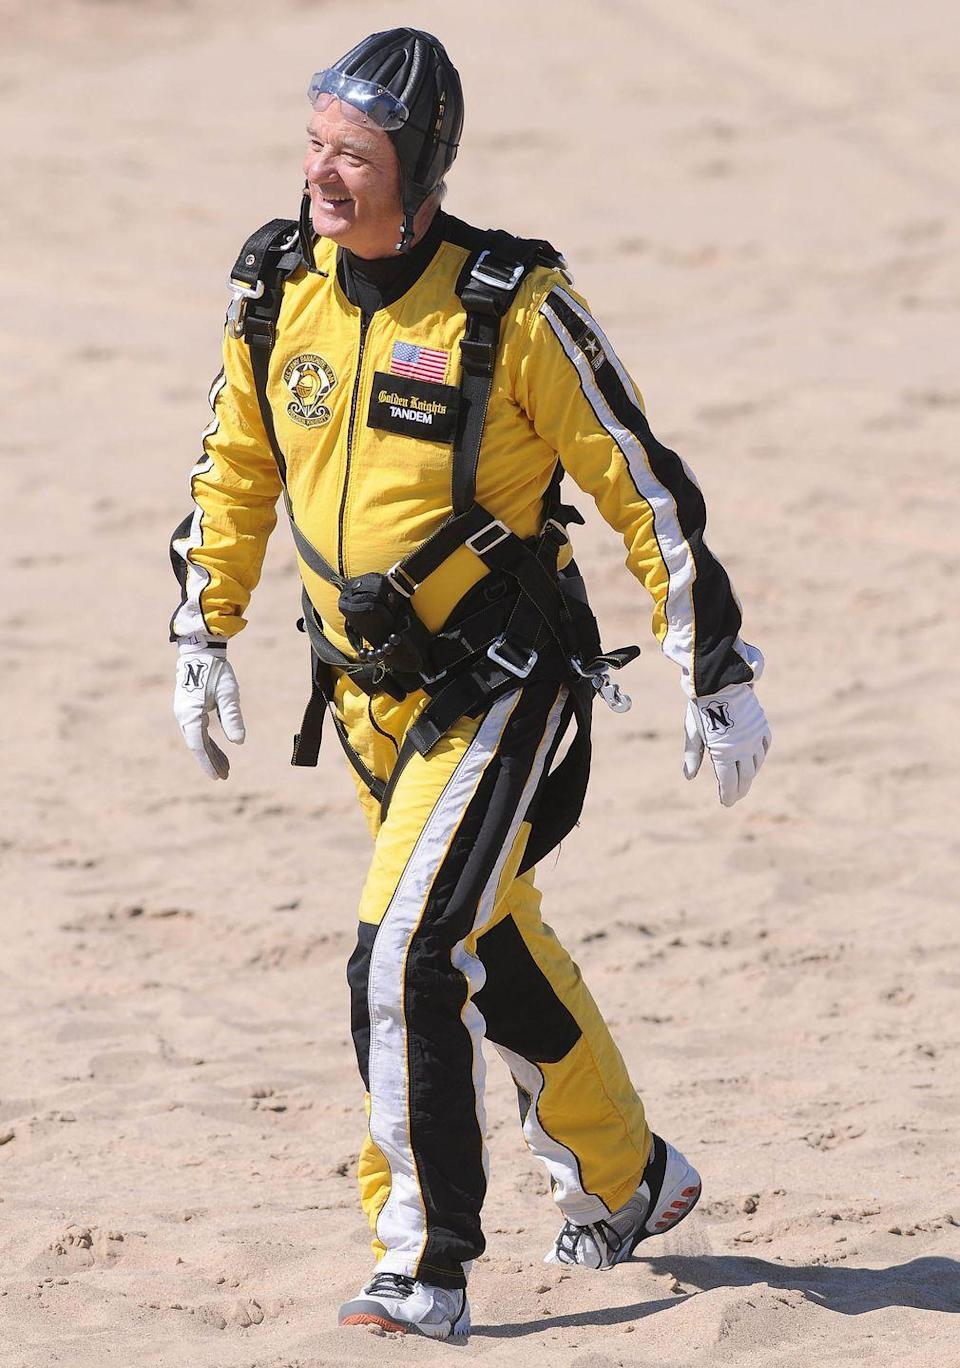 <p>Bill Murray is shown after skydiving tandem with the U.S. Army parachute team the Golden Knights at the 50th Chicago Air and Water Show on August 15, 2008 in Chicago, Illinois.</p>